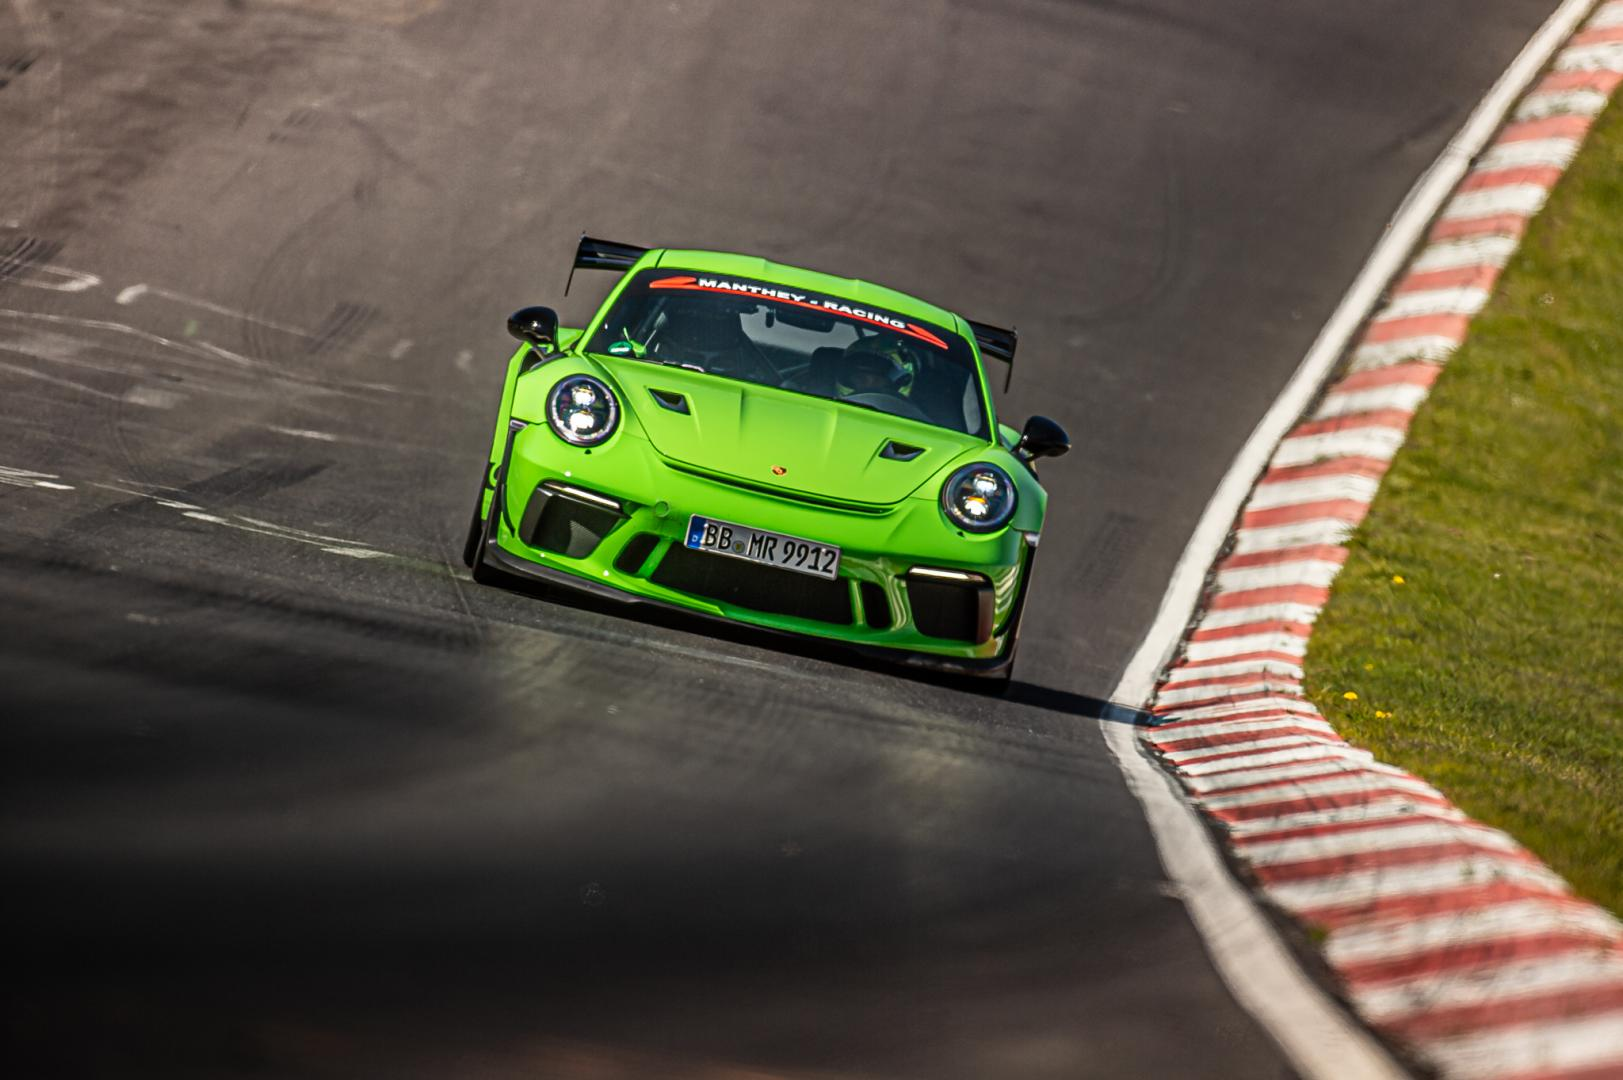 Porsche 911 GT3 MR (Manthey Racing) op de Nürburgring Nordschleife